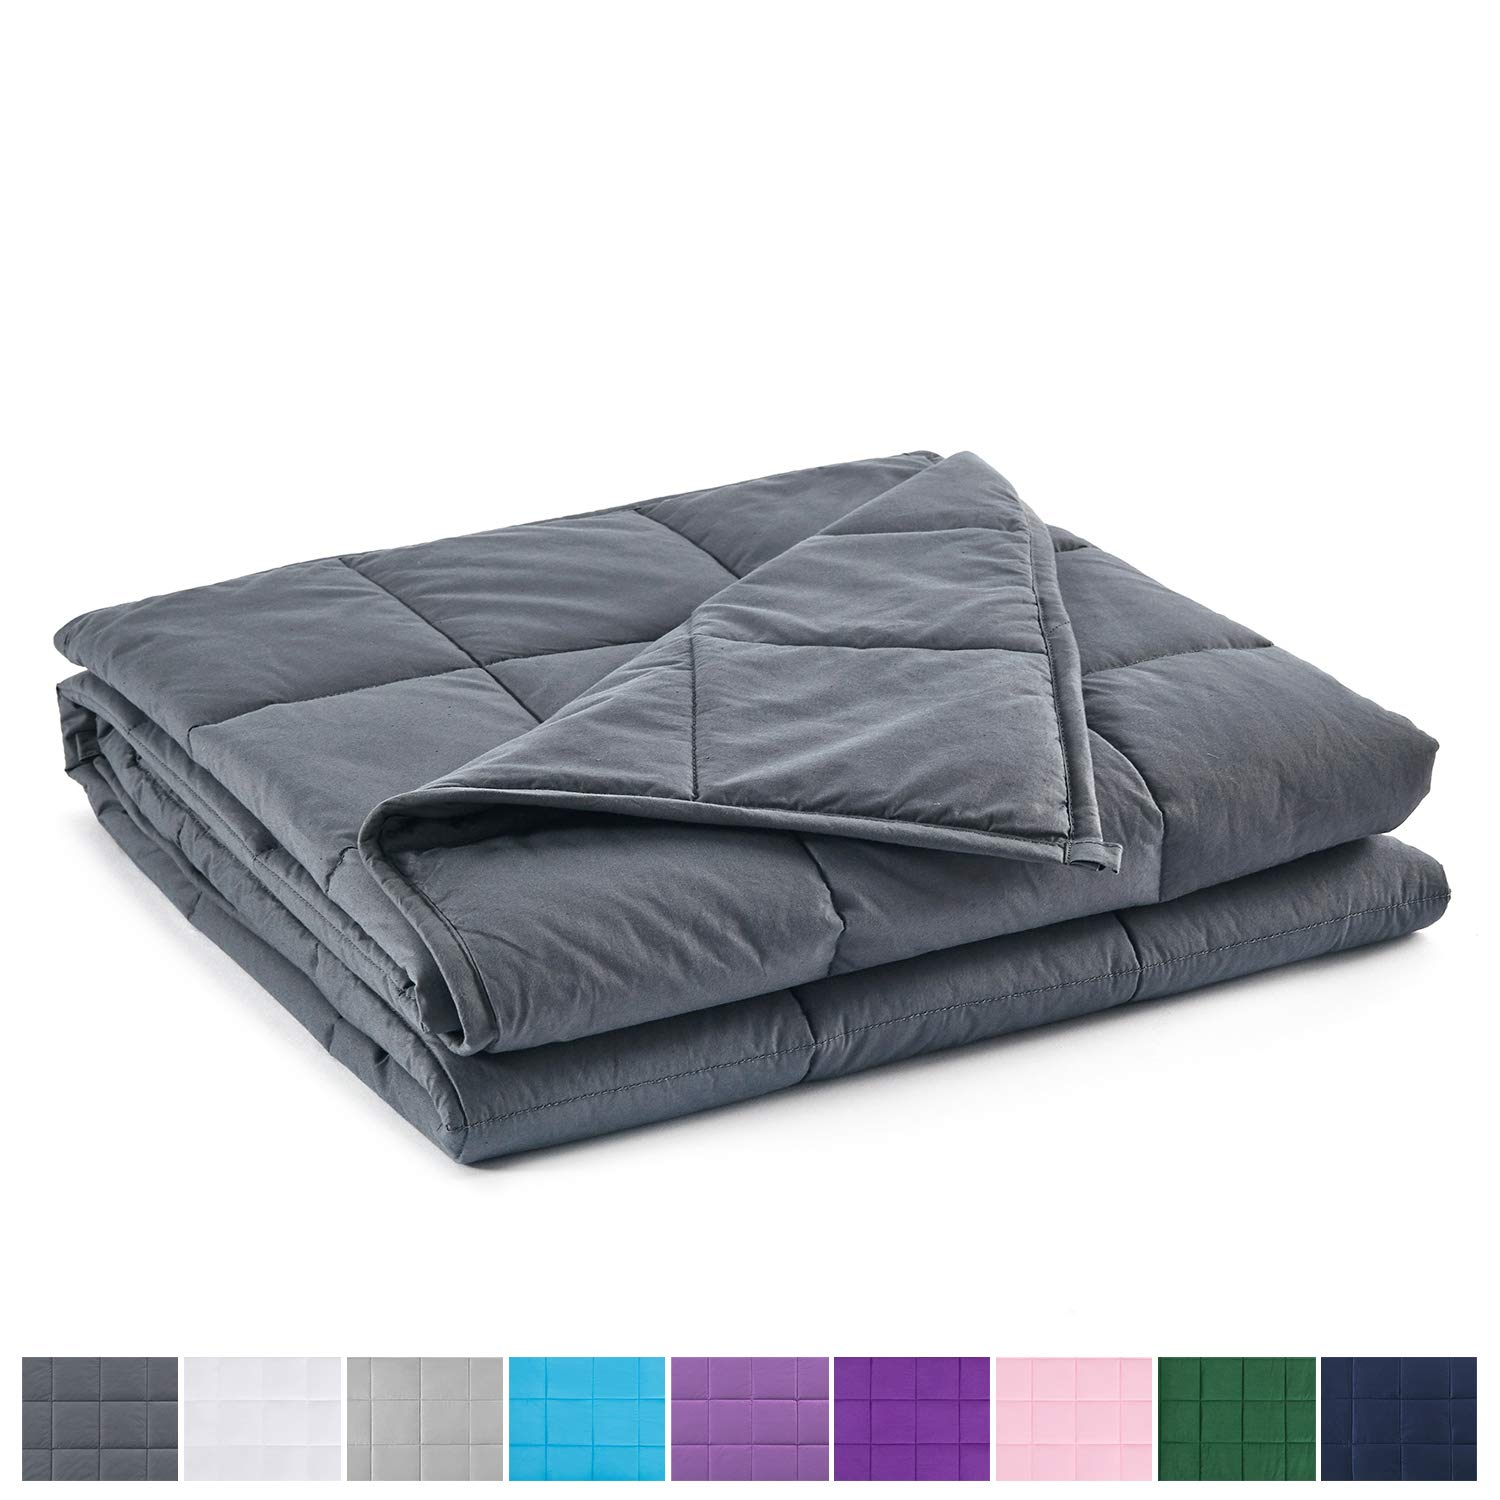 RelaxBlanket King Size Weighted Blanket | 80''x90'',20lbs | for Single or Double | Premium Cotton Material with Glass Beads | Dark Grey